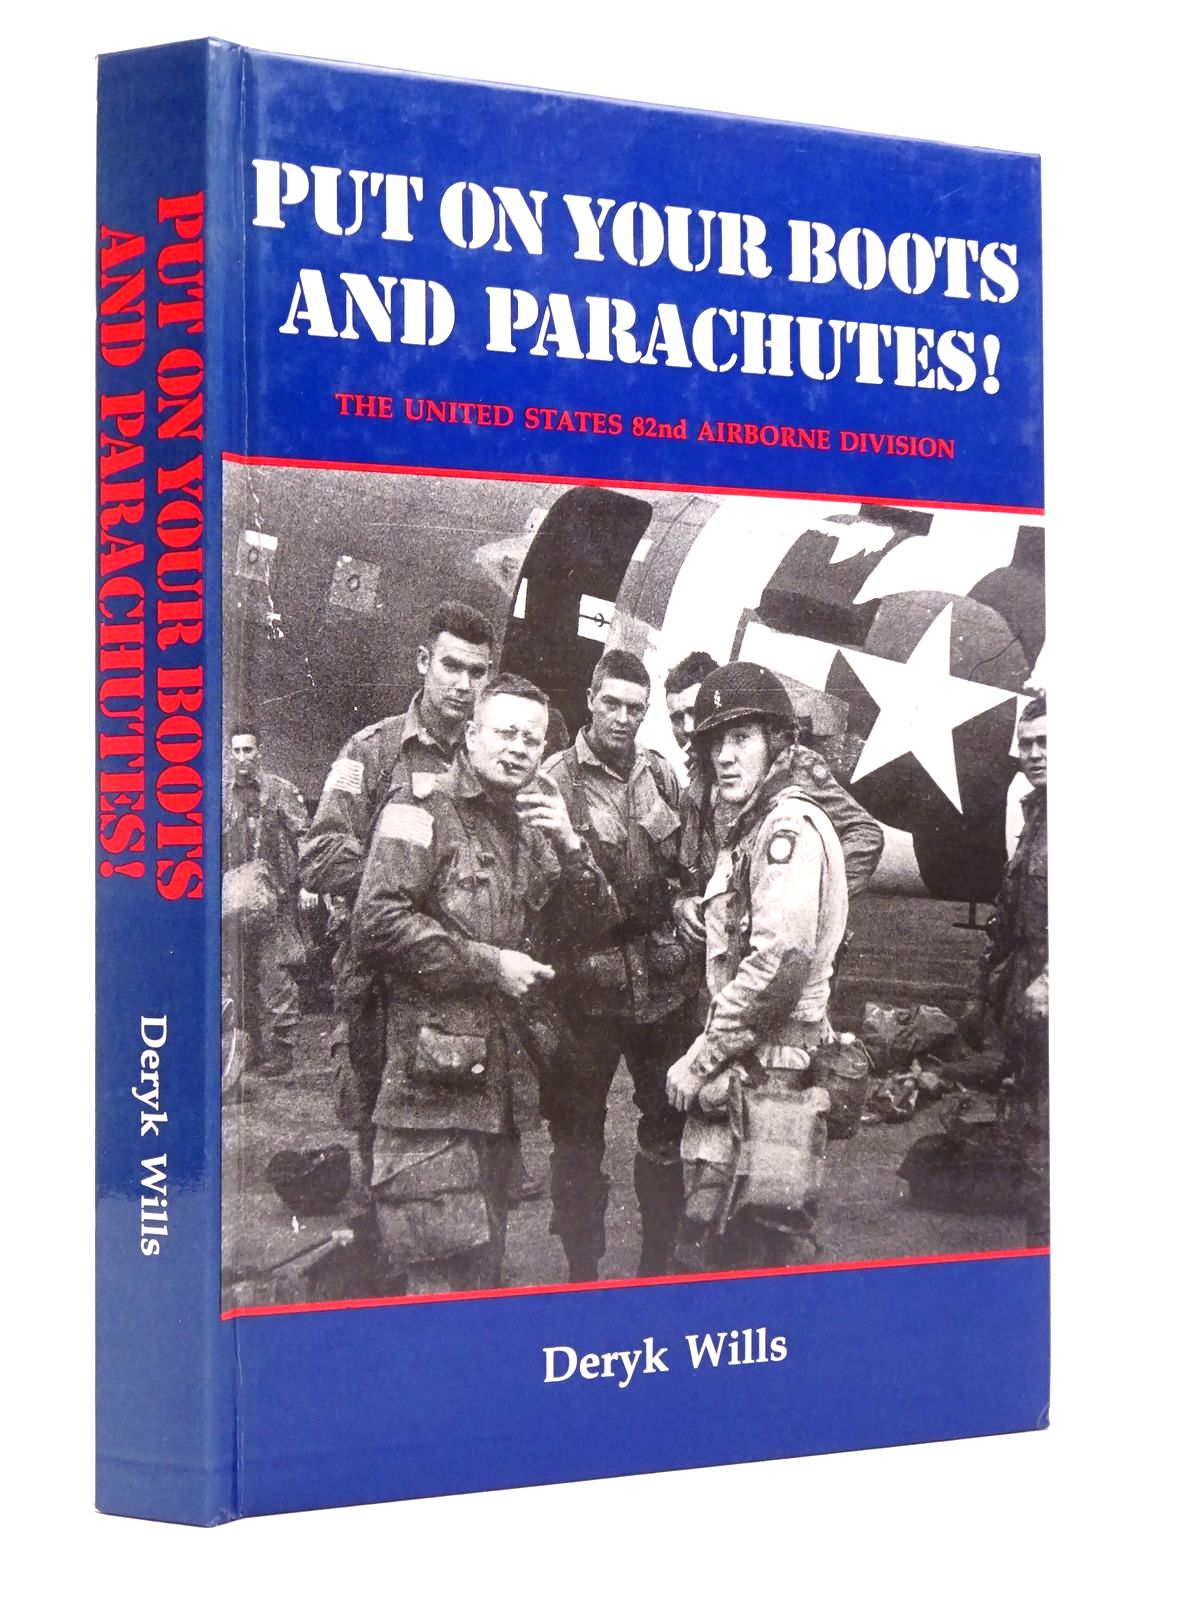 Photo of PUT ON YOUR BOOTS AND PARACHUTES! written by Wills, Deryk published by Deryk Wills (STOCK CODE: 1817750)  for sale by Stella & Rose's Books